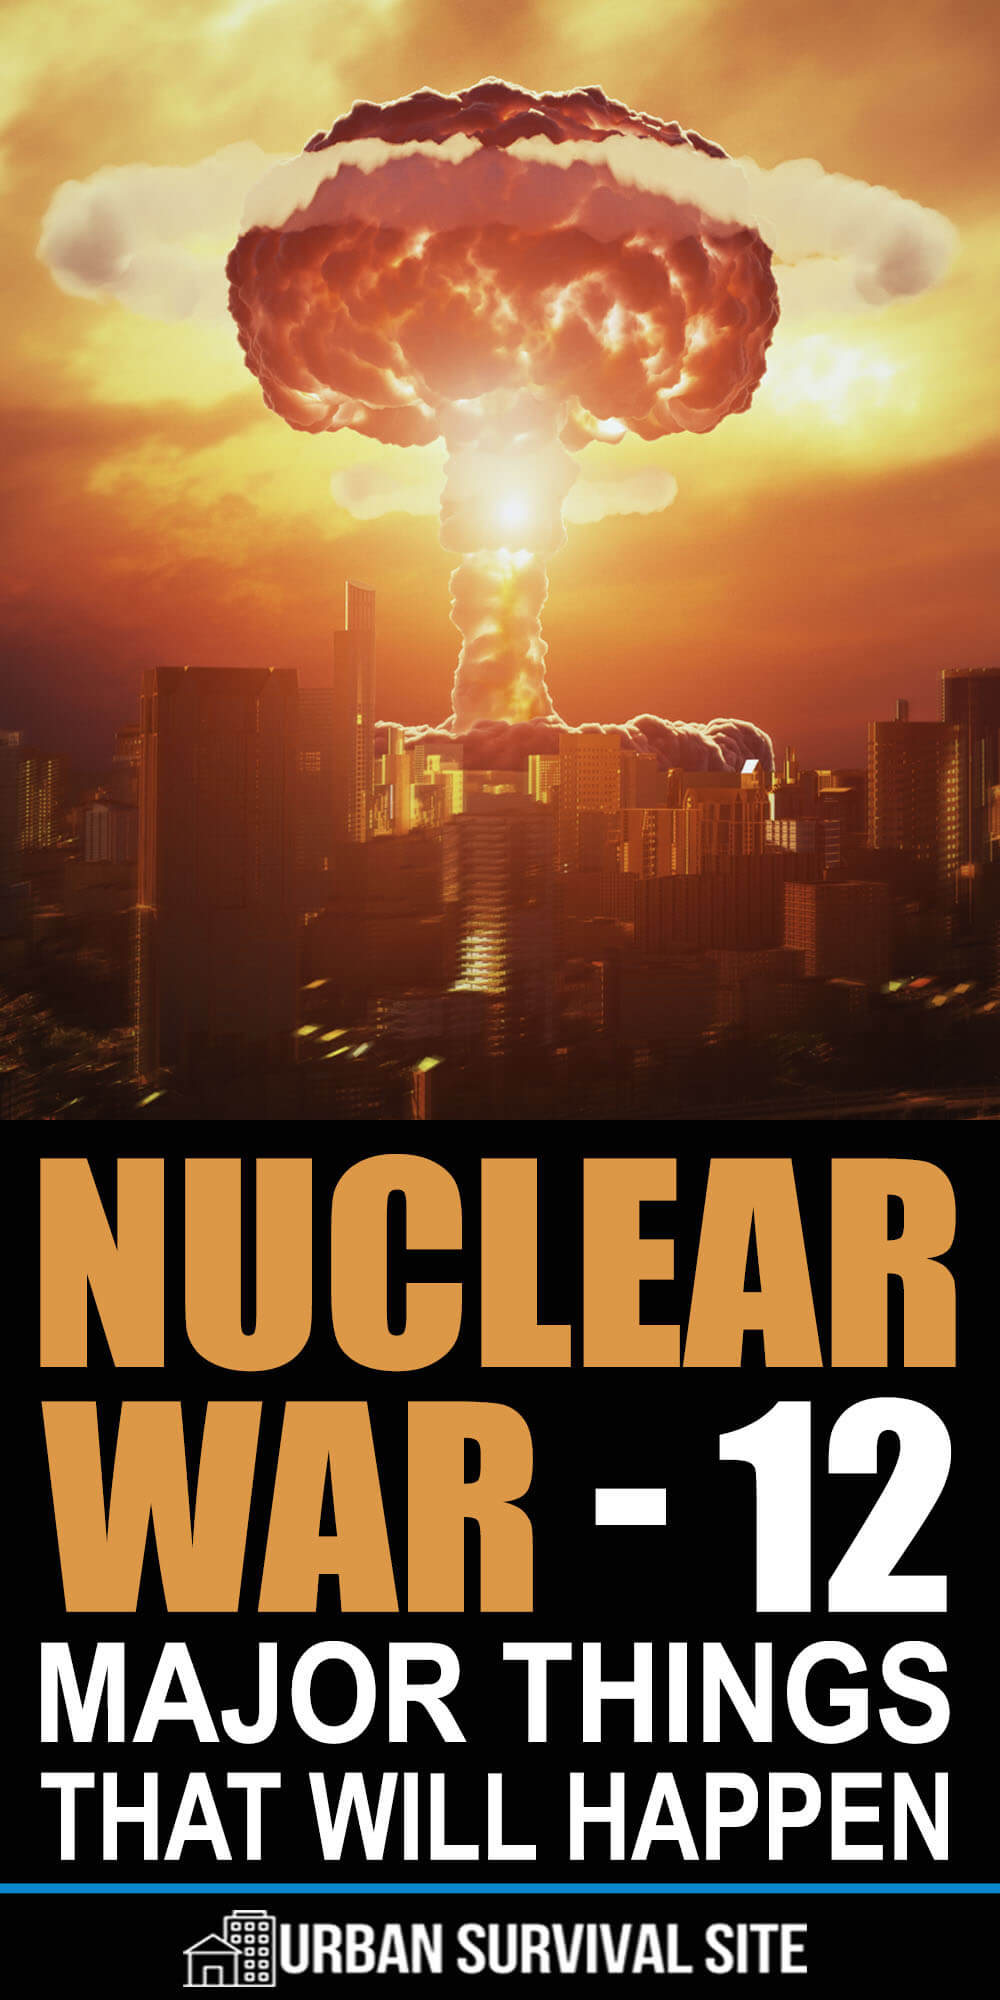 Nuclear War - 12 Major Things That Will Happen